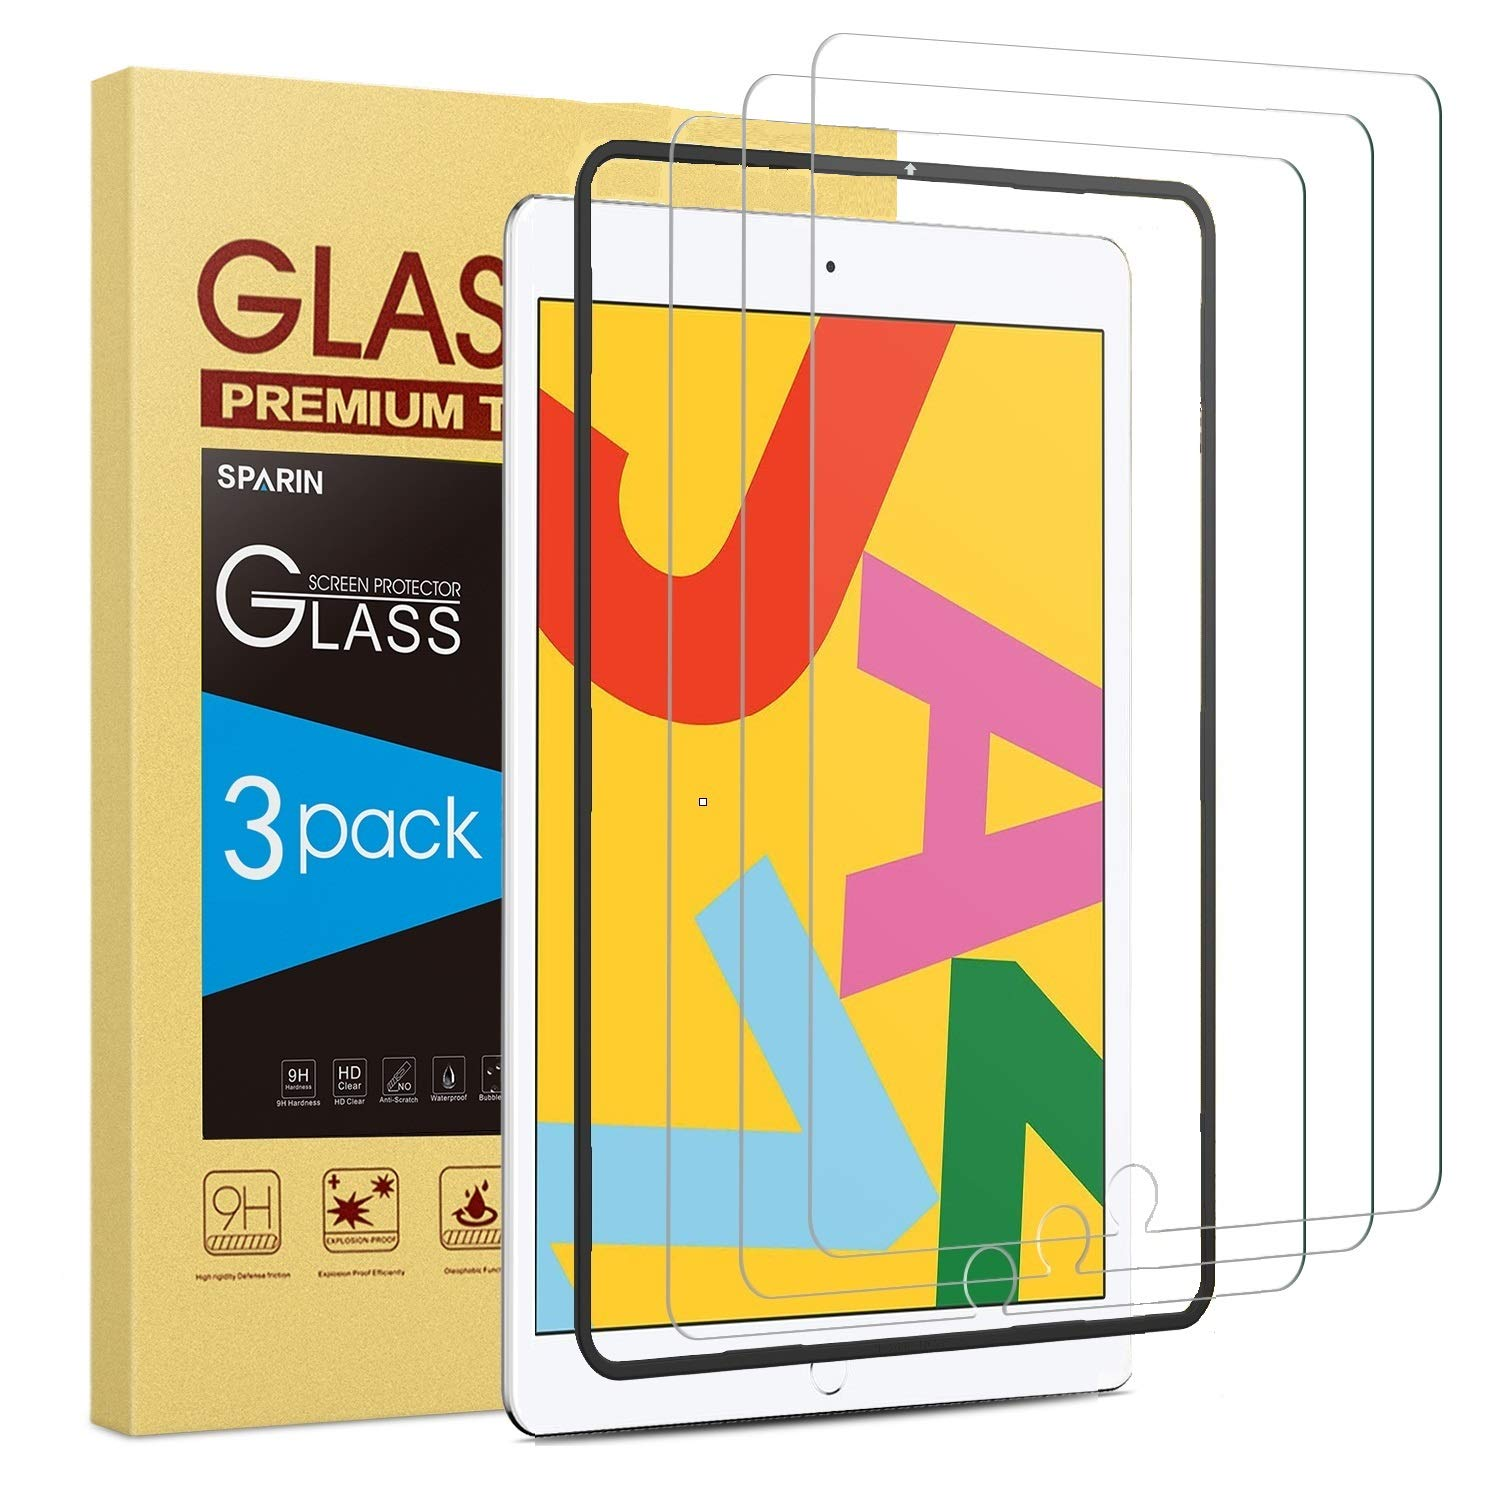 [3 Pack] Screen Protector for iPad 10.2 (2019), SPARIN Tempered Glass for iPad 10.2 (7th Gen) 2019 Released [High Sensitivity] [Easy Installation] [Bubble Free]